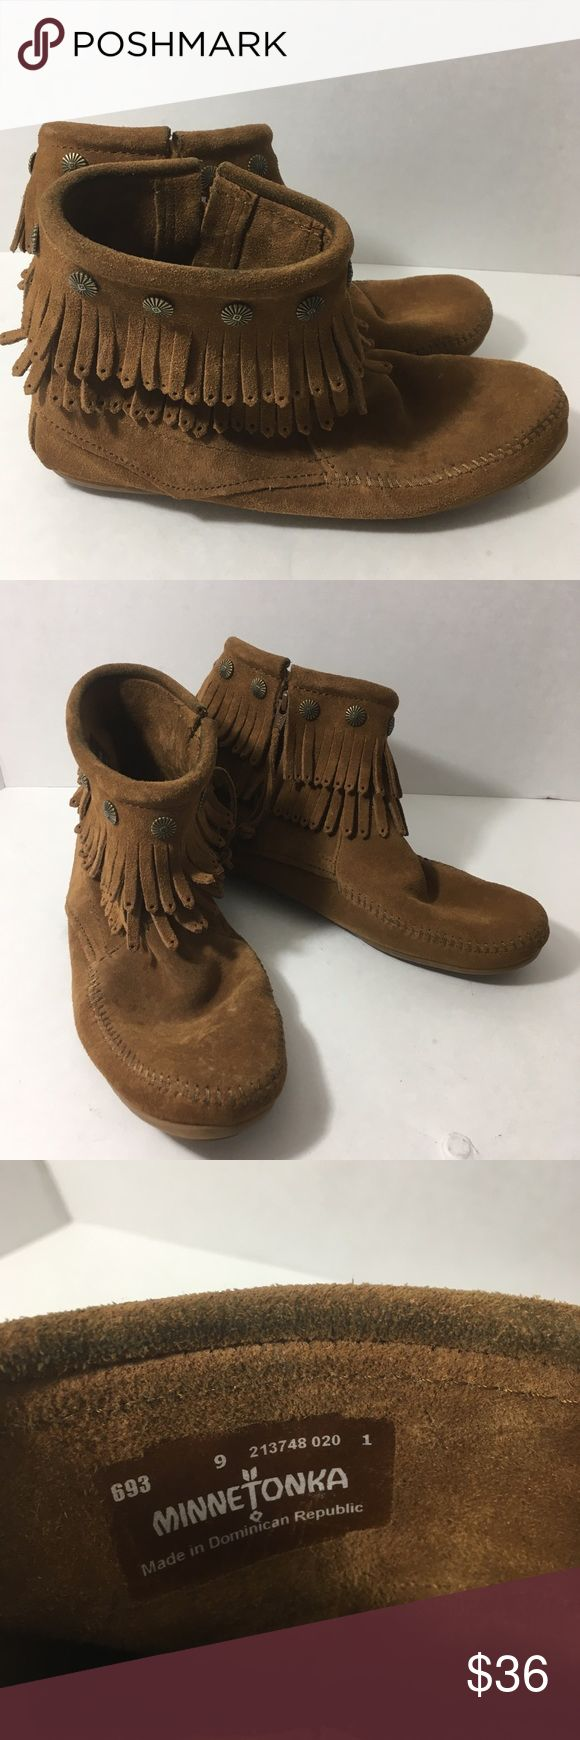 Minnetonka Fringe Ankle Boots Suede ankle boots with fringe and Southwestern hardware. Interior zipper. Excellent preowned condition. Minnetonka Shoes Ankle Boots & Booties